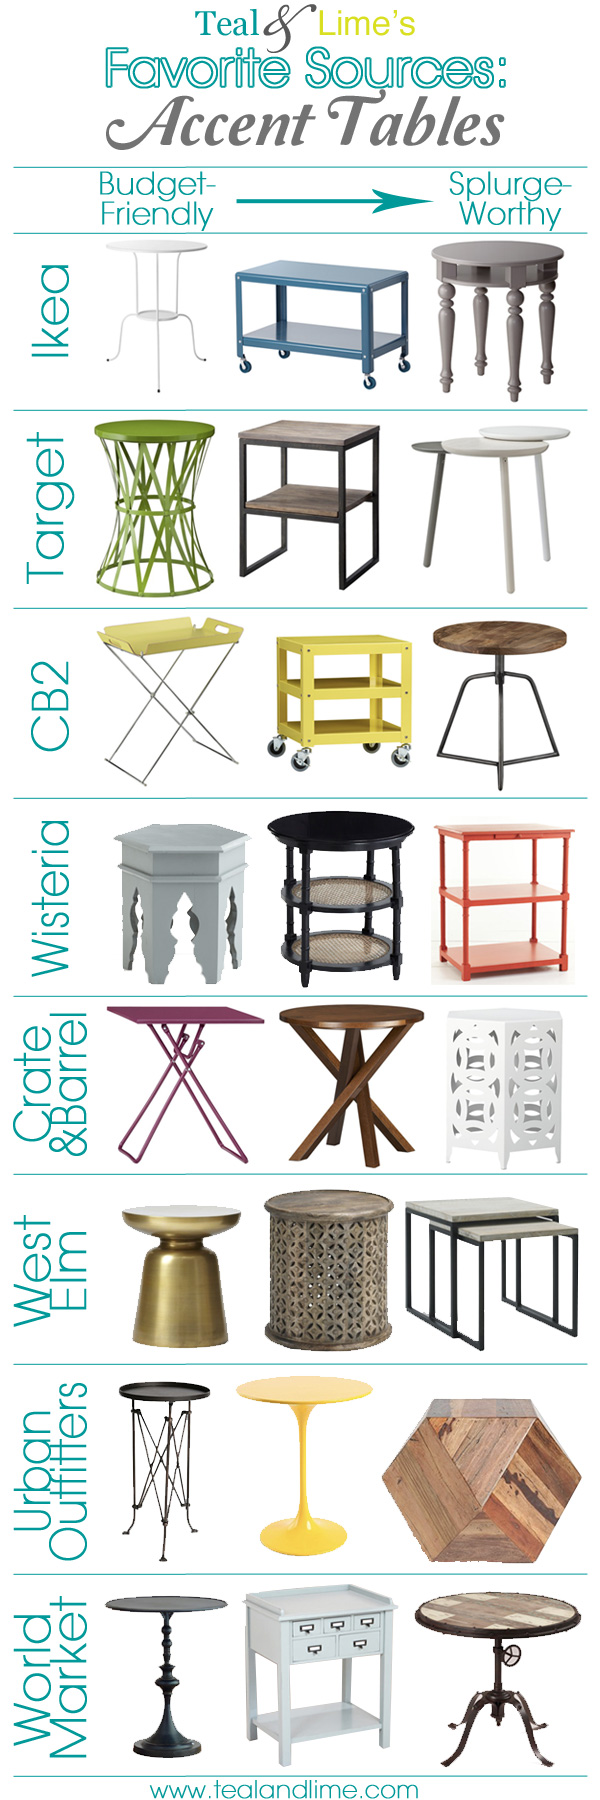 8 of My Favorite Places to Shop for Affordable Accent Tables | tealandlime.com